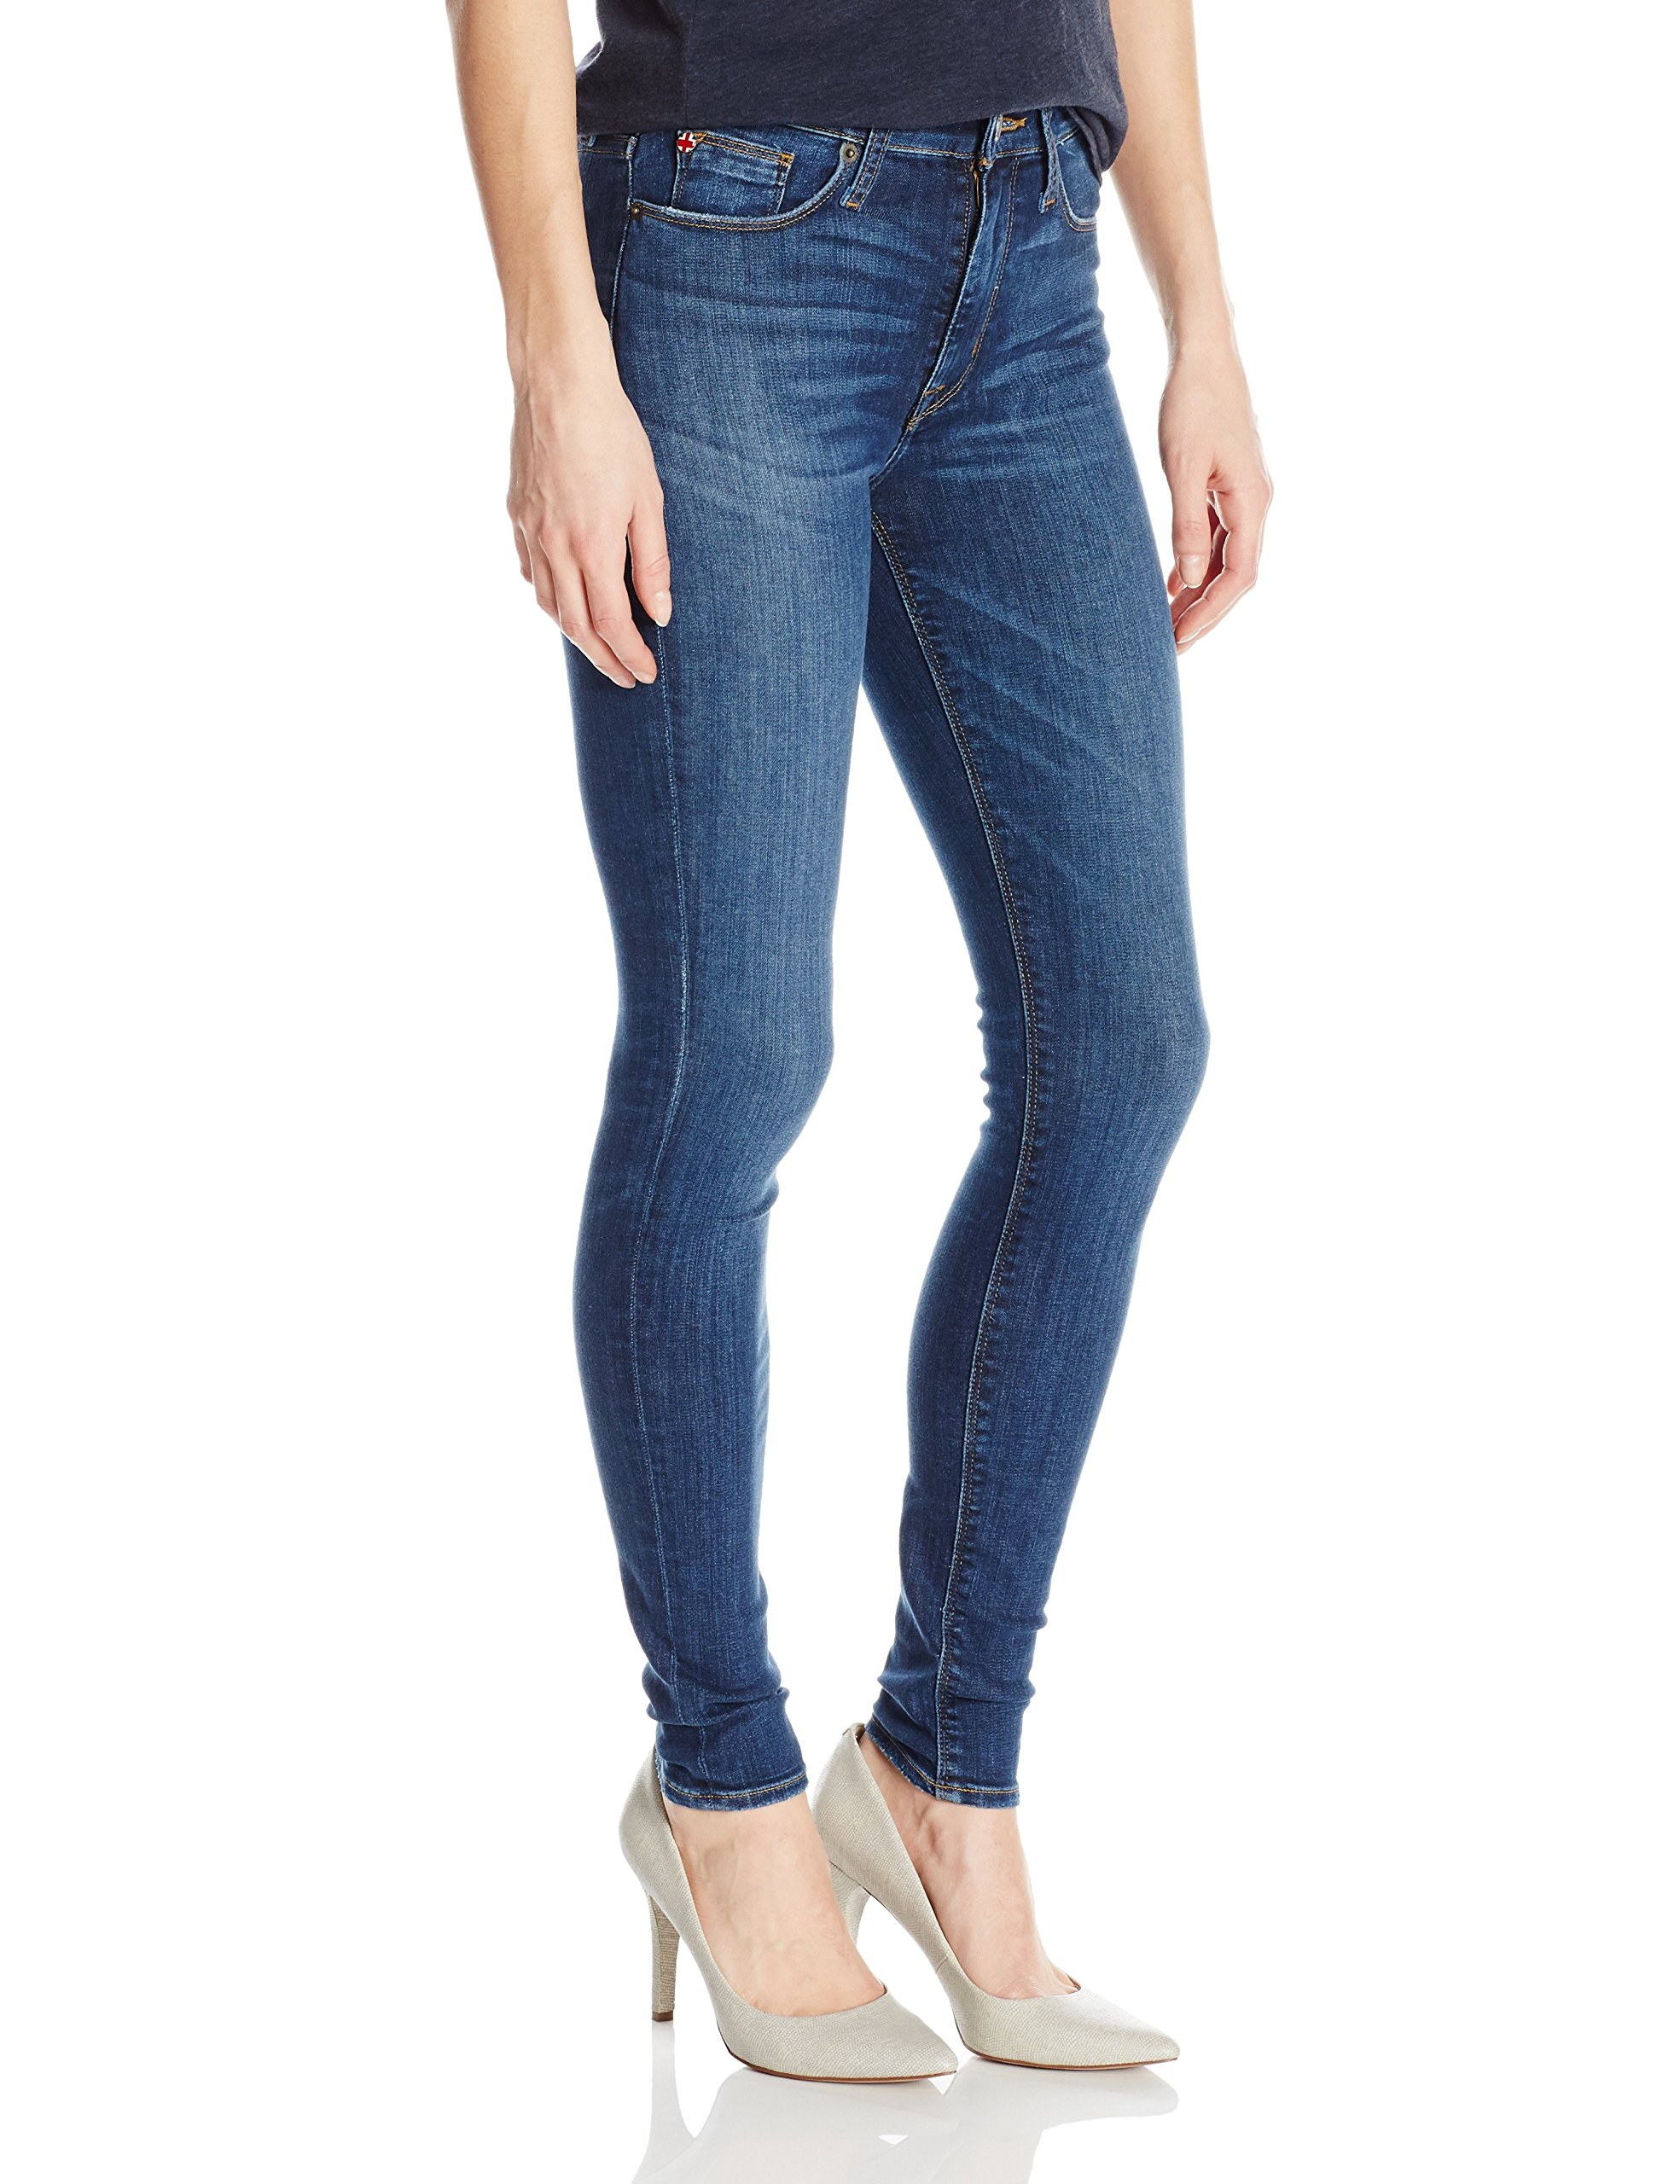 Hudson Jeans Women's Barbara High Waist Super Skinny Jean, Dream on, 26 by Hudson Jeans